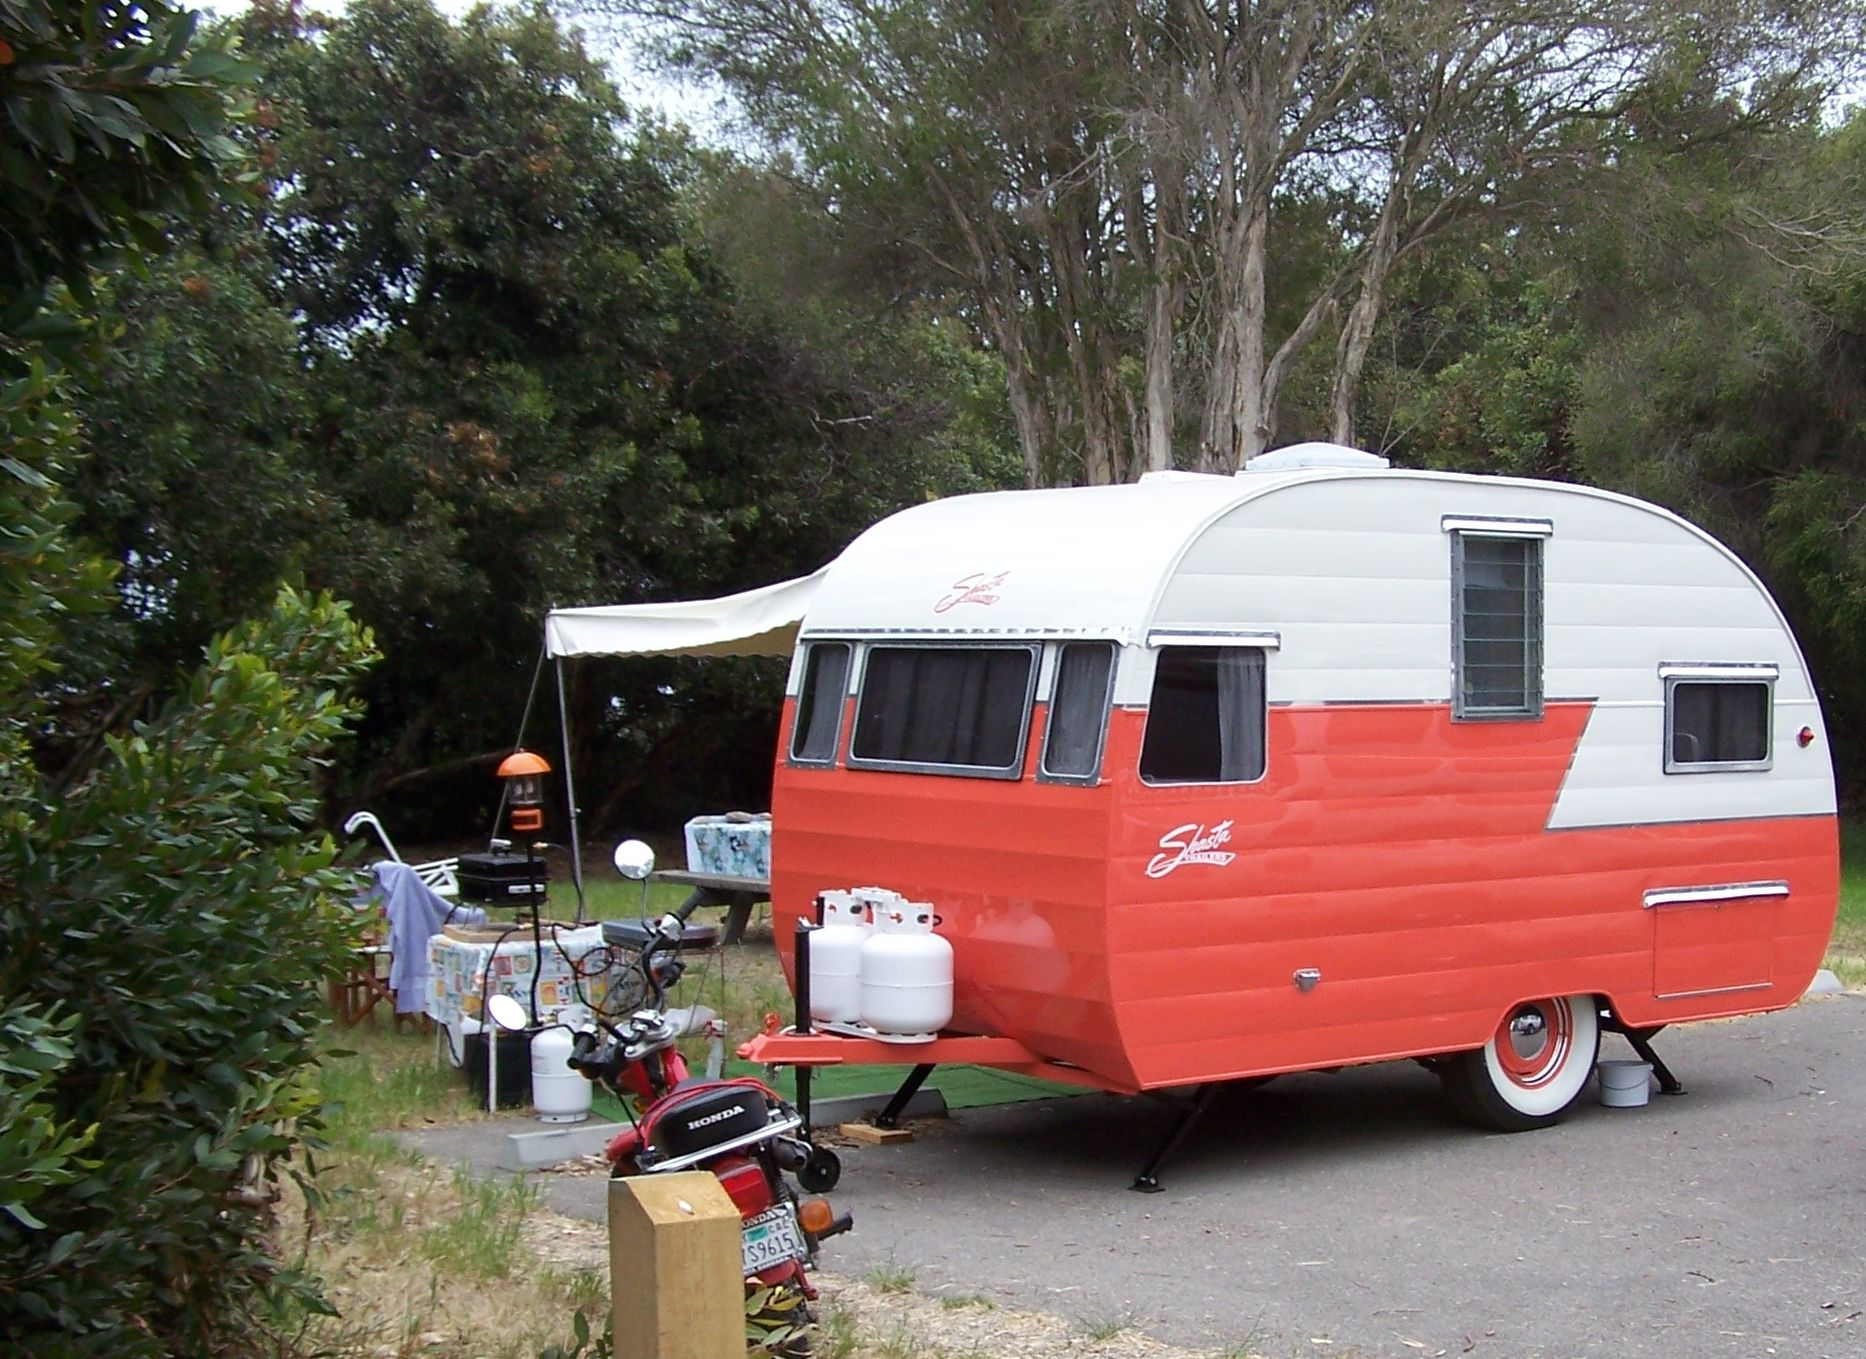 Camping trailers small camping trailers camping for Tiny camping trailers